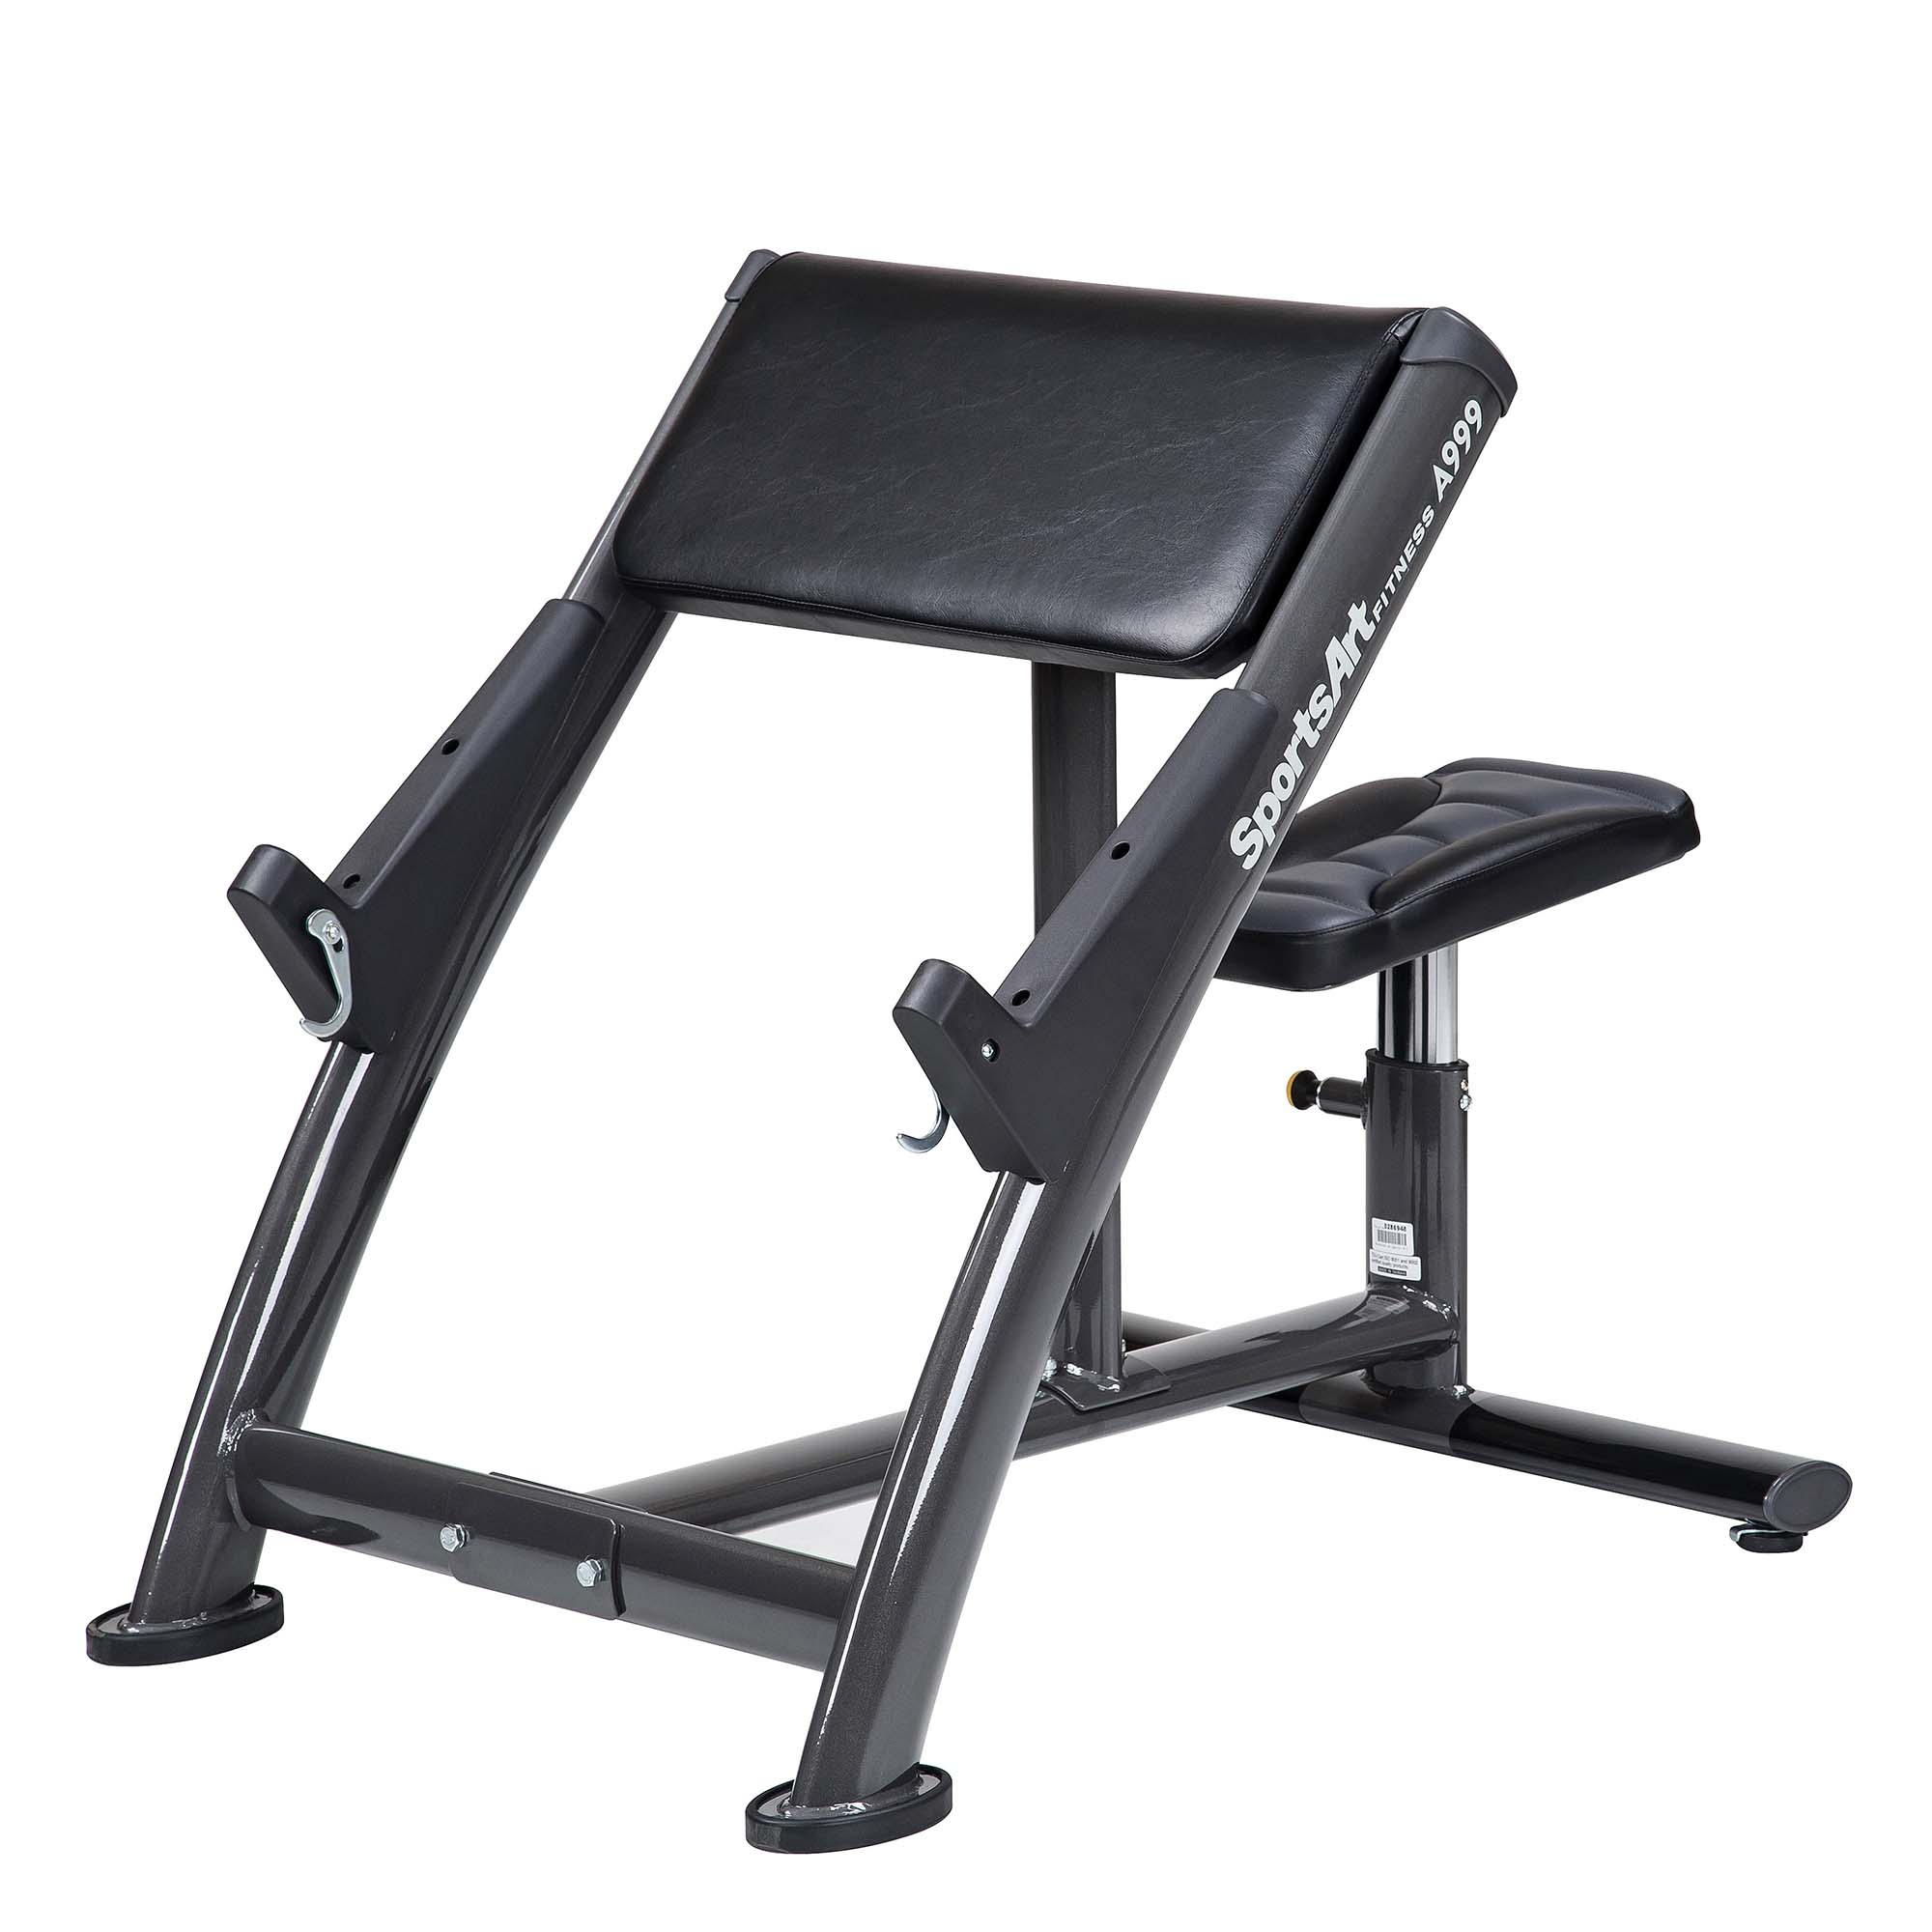 ARM CURL BENCH - SPORTSART (A999)